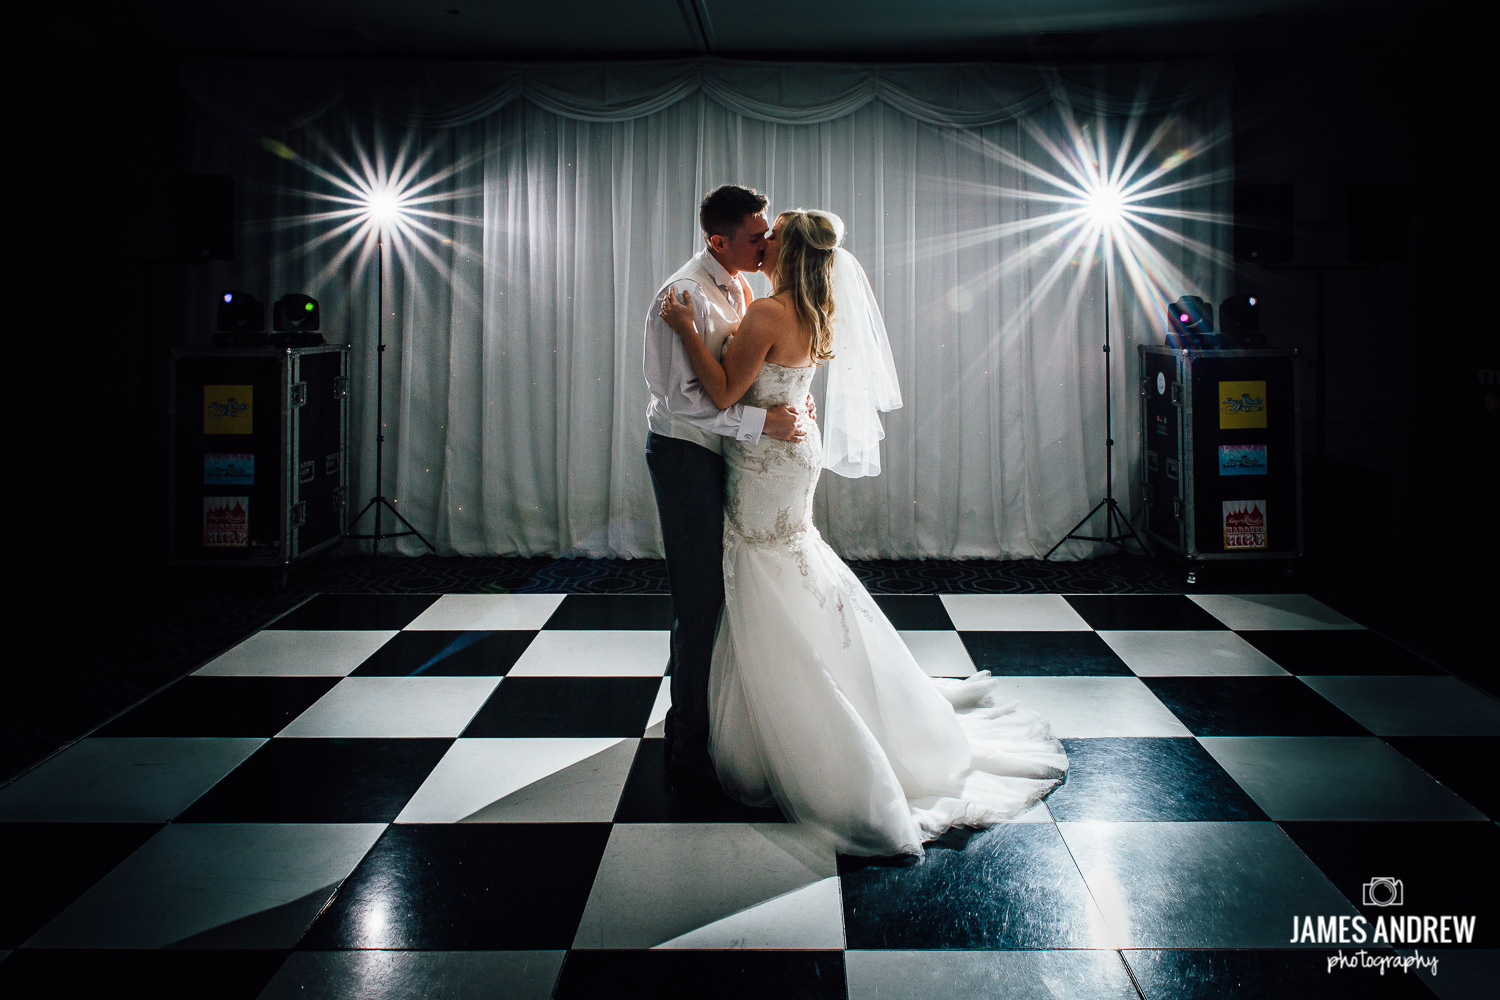 Bride and groom first dance wedding photo